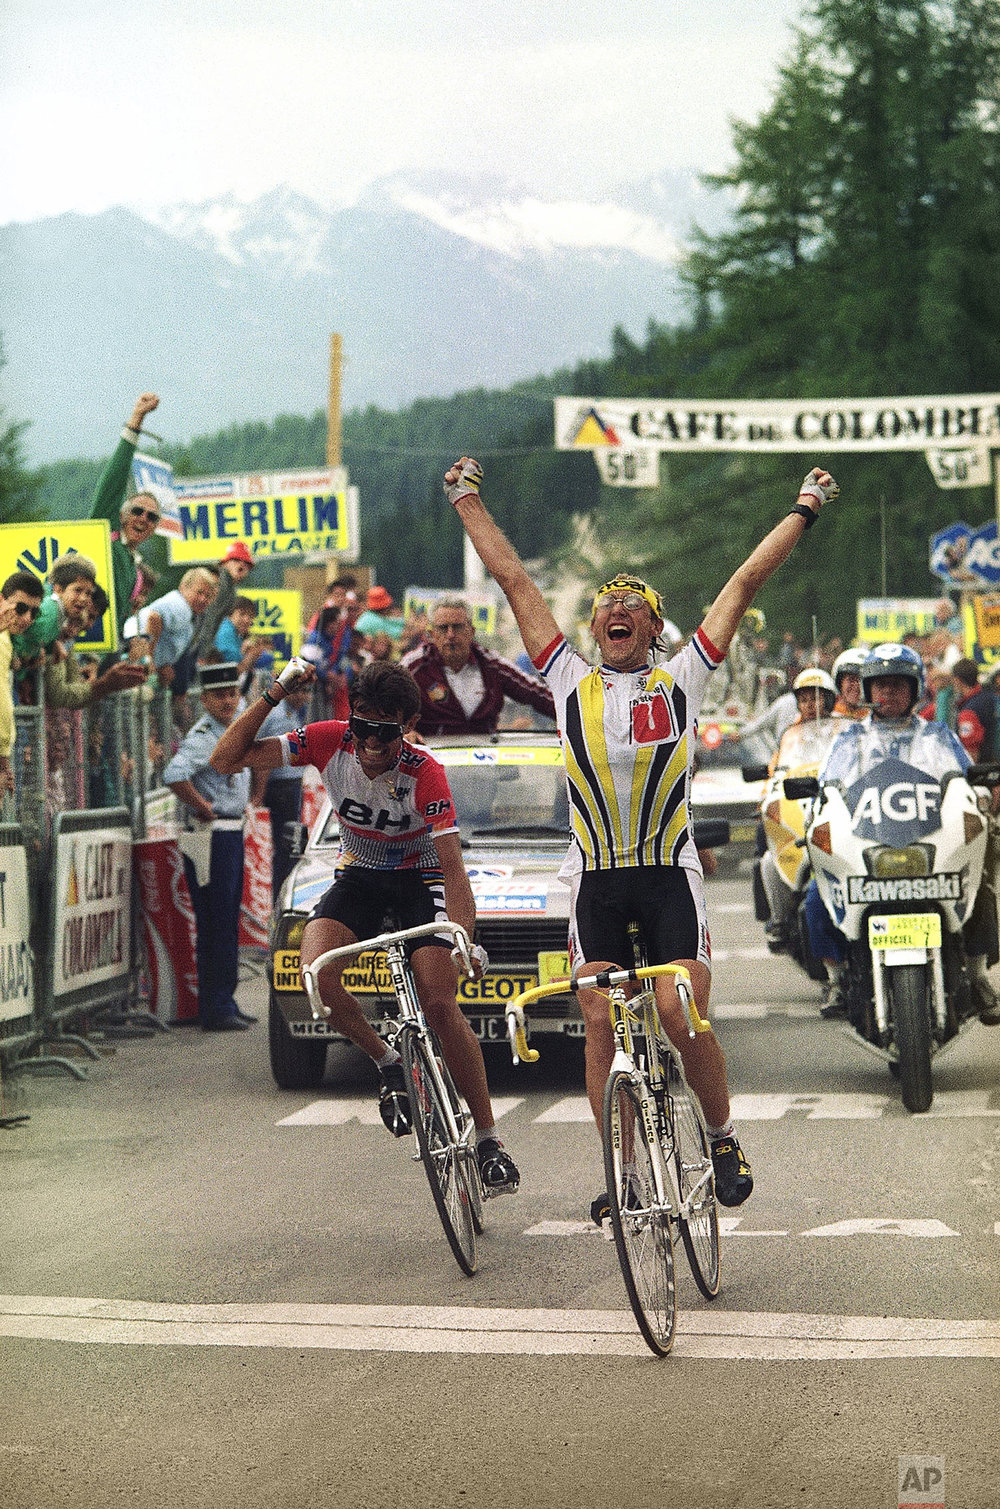 France's Laurent Fignon celebrates crossing the finish line first to take the 21st stage of the Tour de France in the French Alpine town of La Plagne, France Wednesday, July 22, 1987. Anselmo Fuerta, left, of Spain was a close second. (AP Photo/Lionel Cironneau)